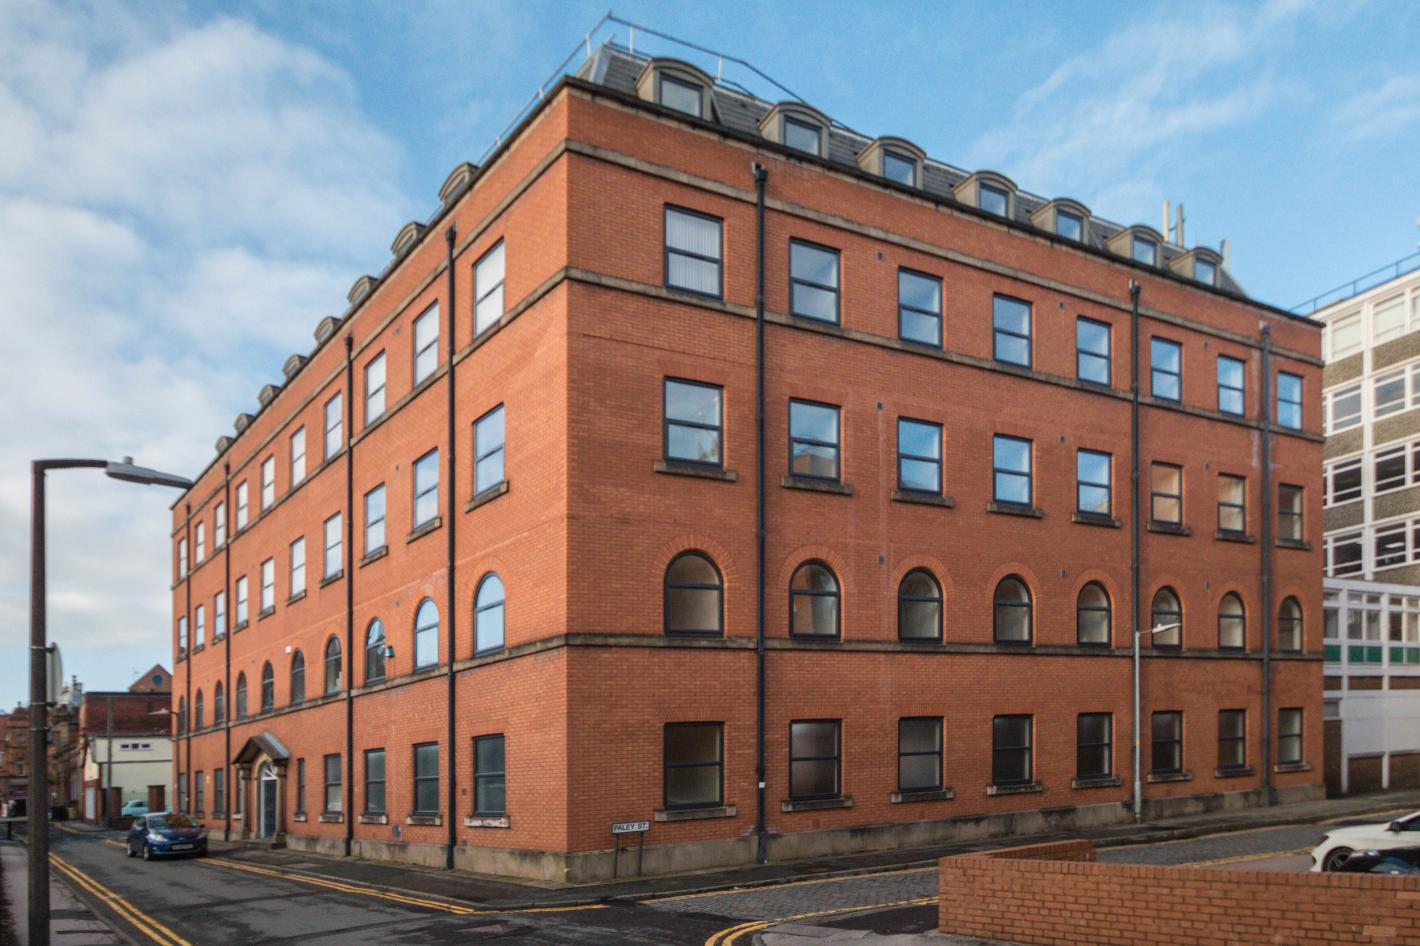 5 stories high block of flats buy to let investment